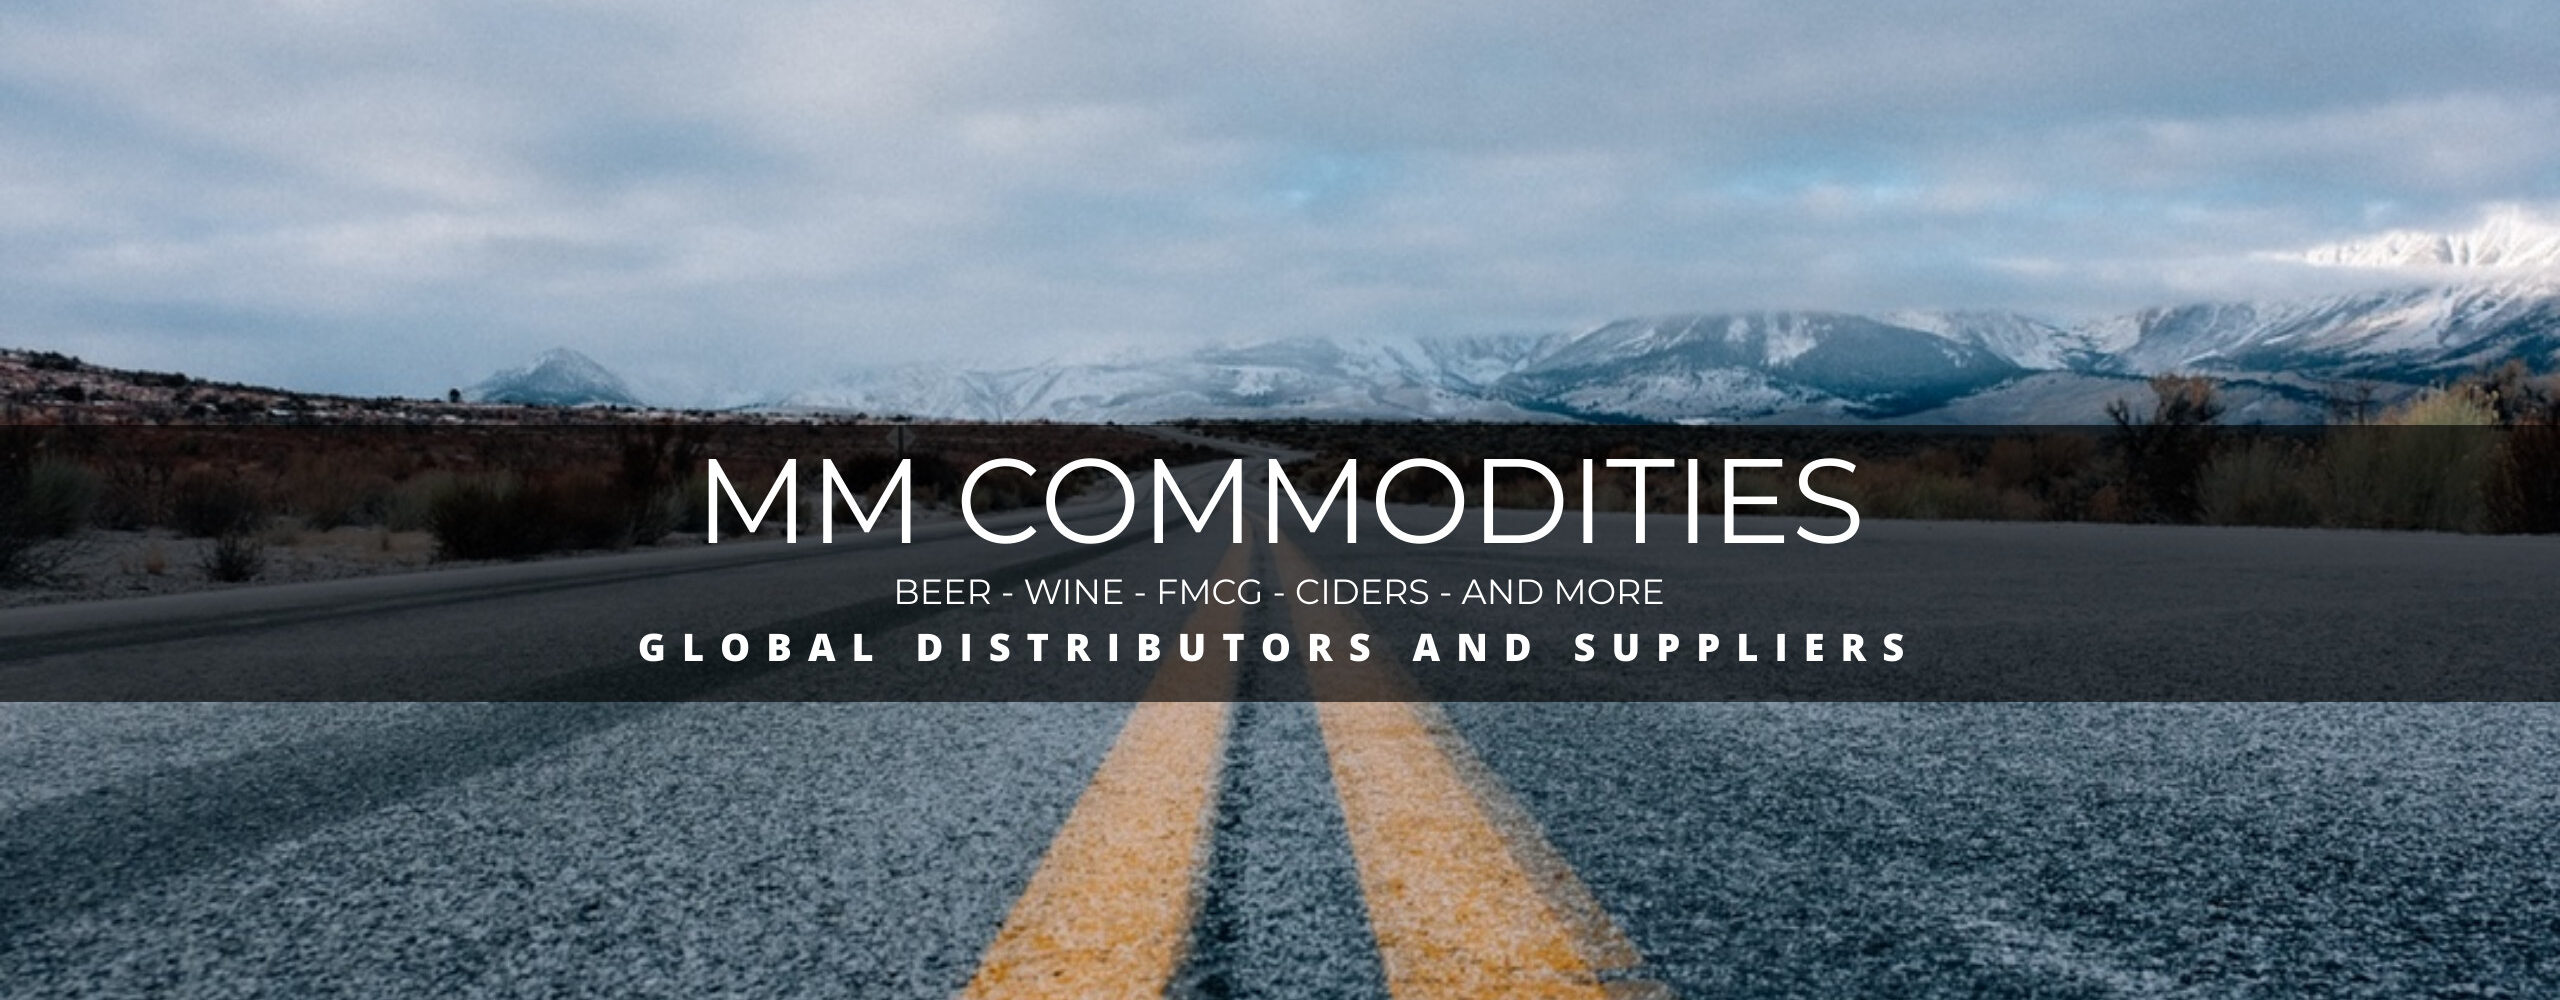 Underbond alcohol suppliers | Beverages & Drinks Wholesalers | MM Commodities